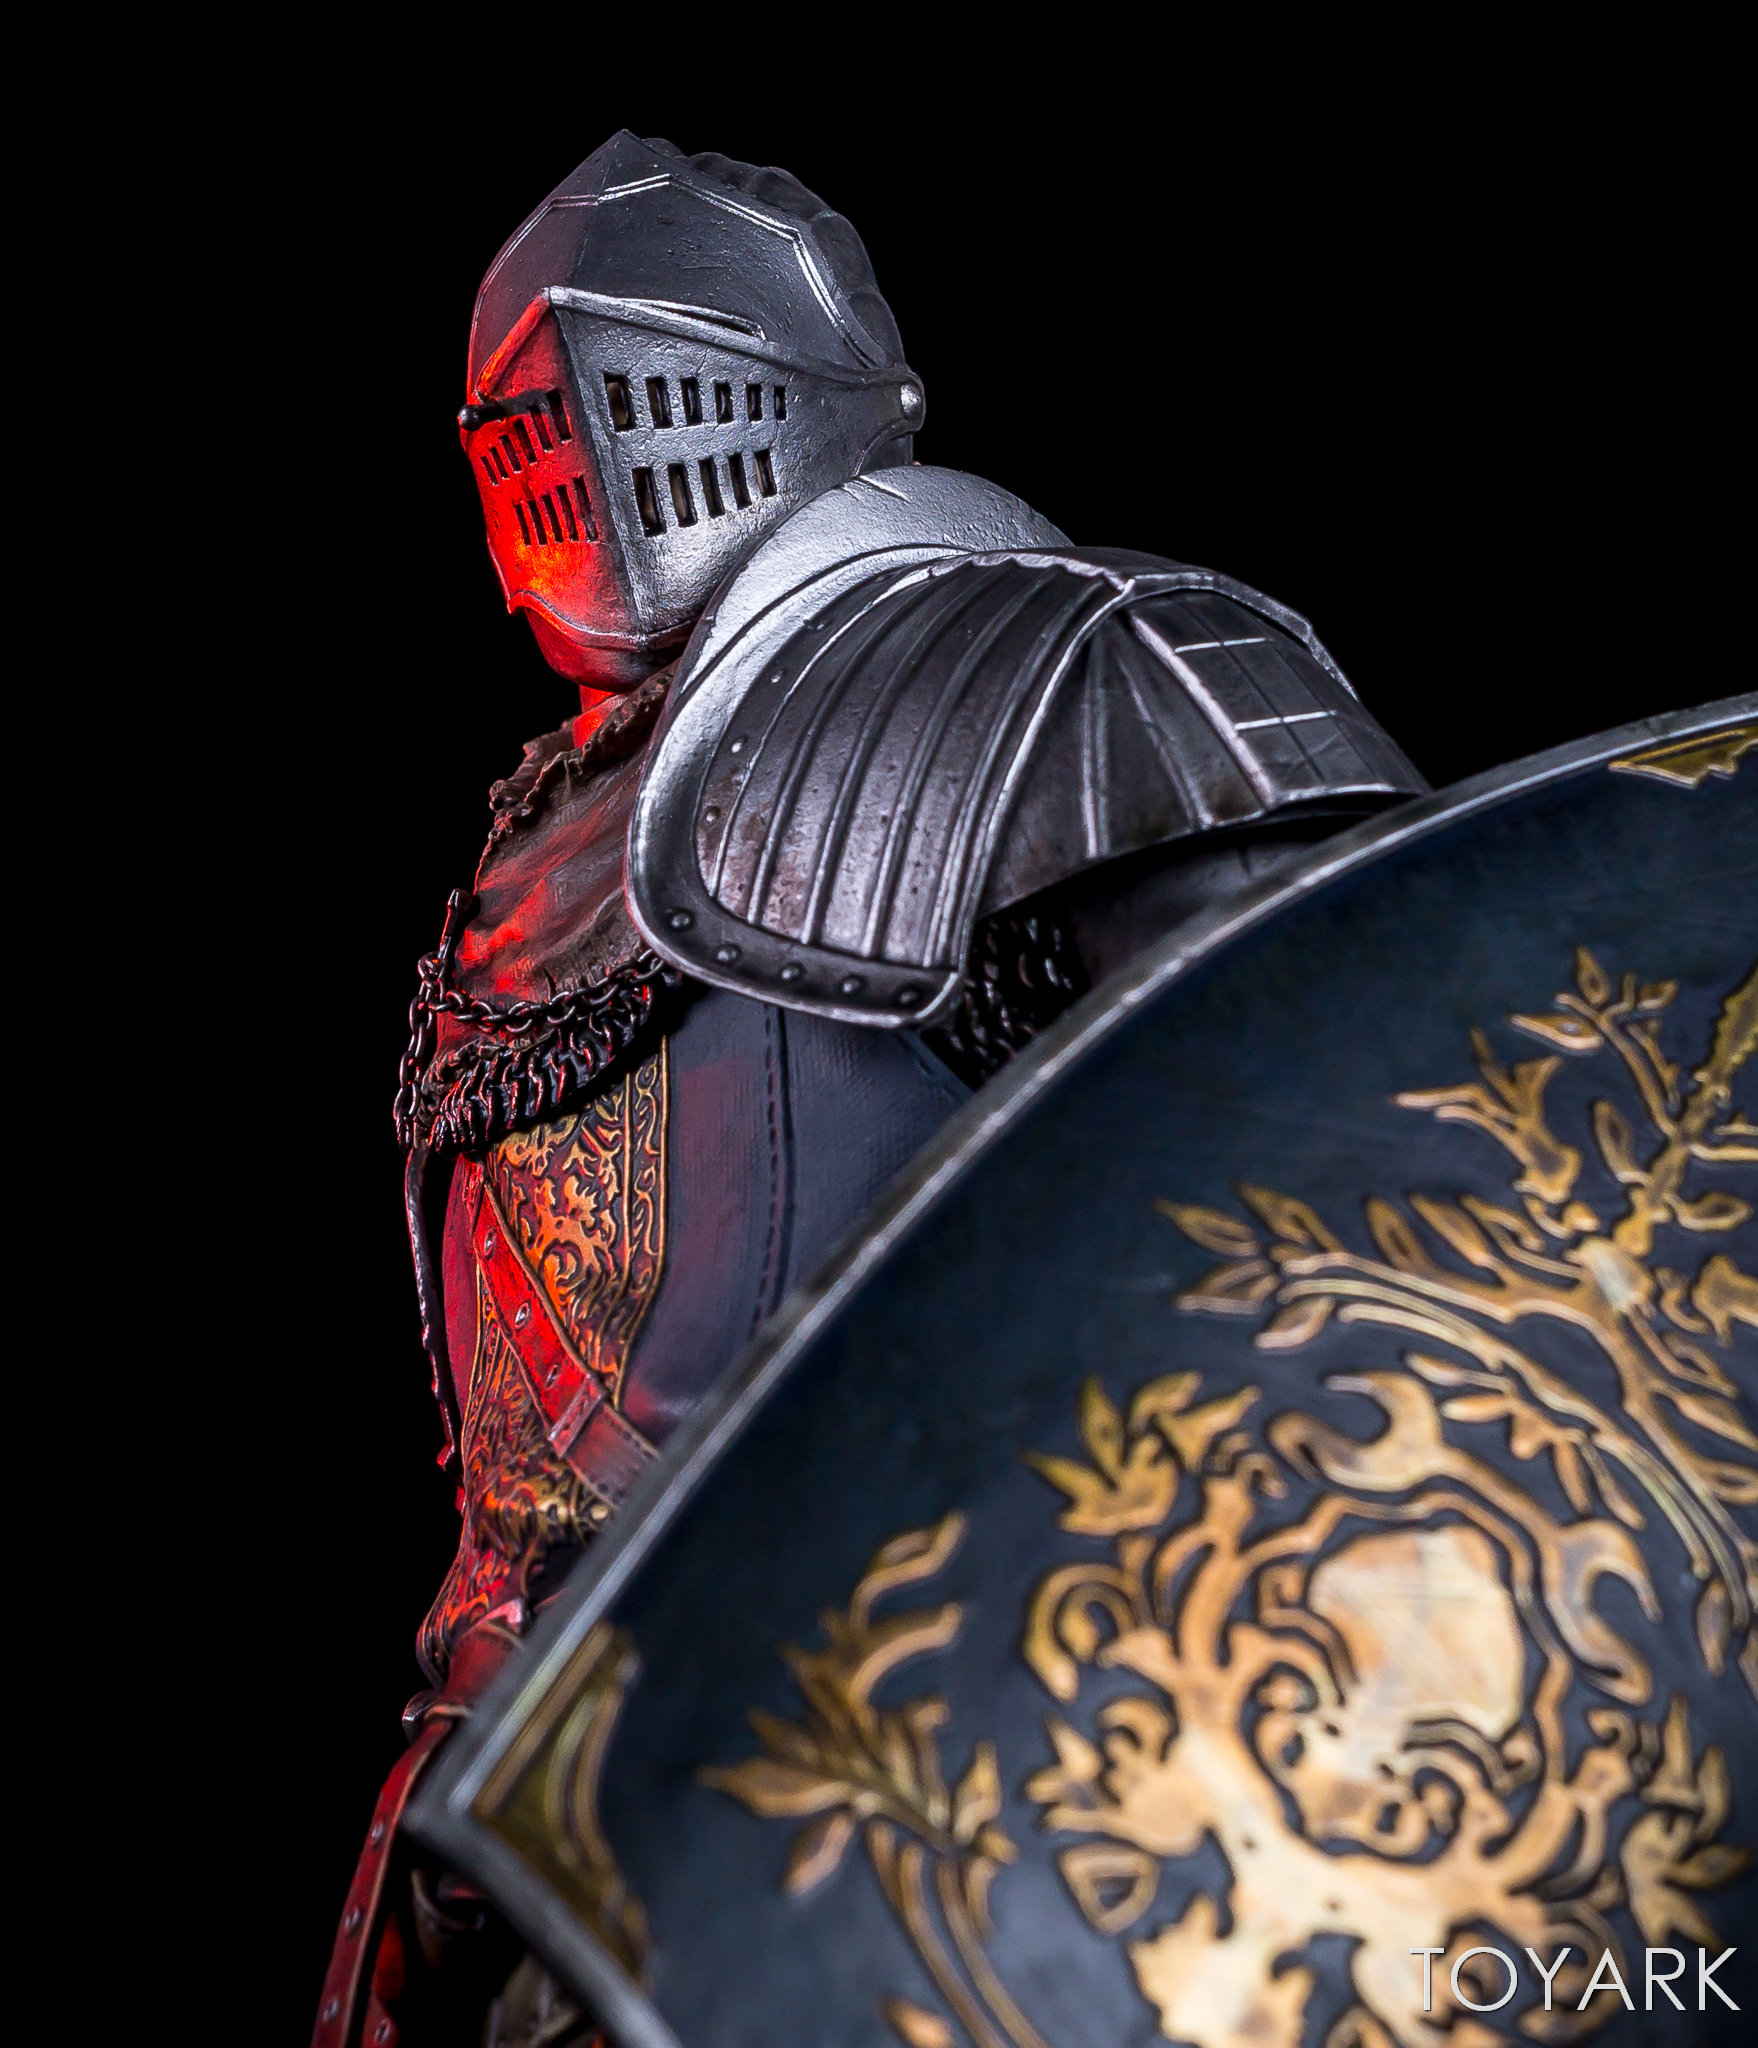 http://news.toyark.com/wp-content/uploads/sites/4/2018/02/Gecco-Dark-Souls-Knight-of-Astora-Oscar-023.jpg